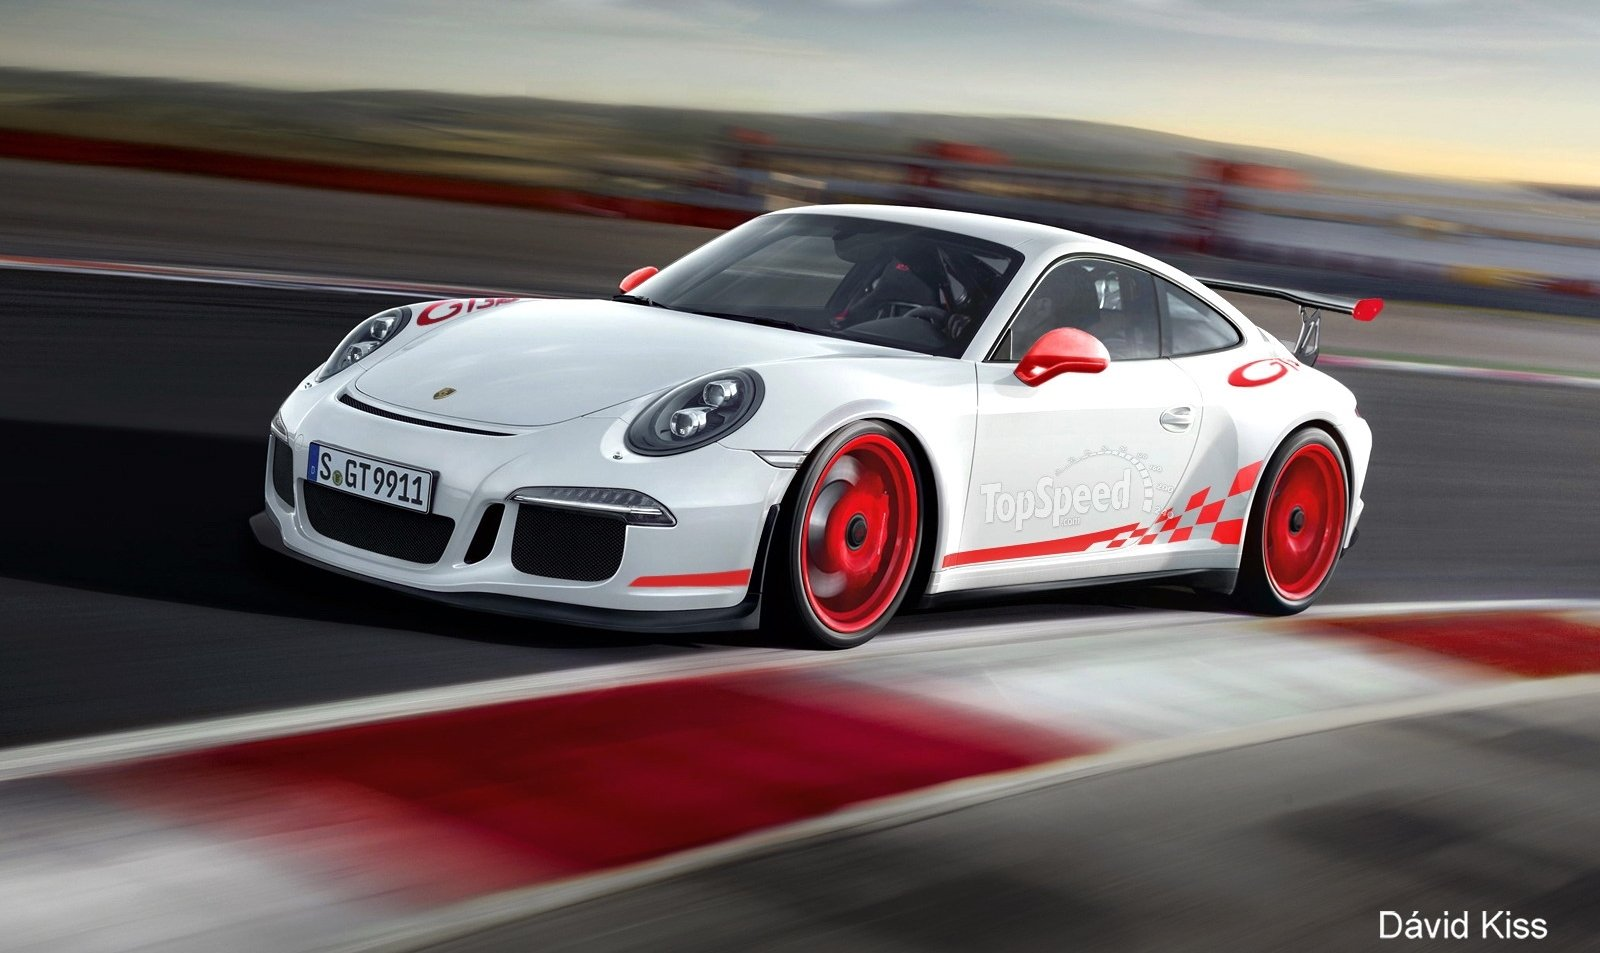 Porsche 911 Gt3 Rs Rumored To Lap Nurburgring In 7 20 News